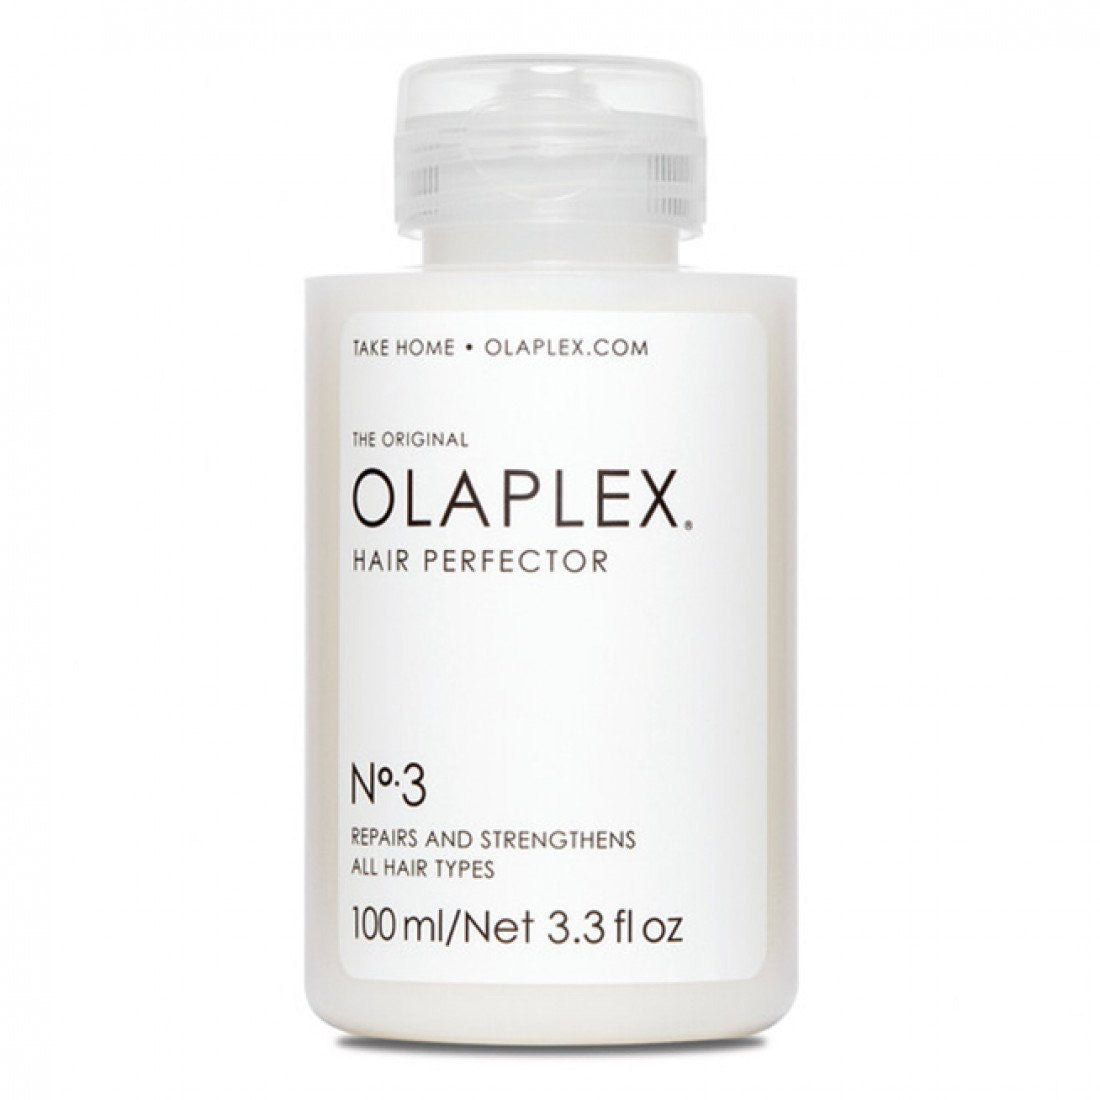 Olaplex no 3 Hair Perfector Mask